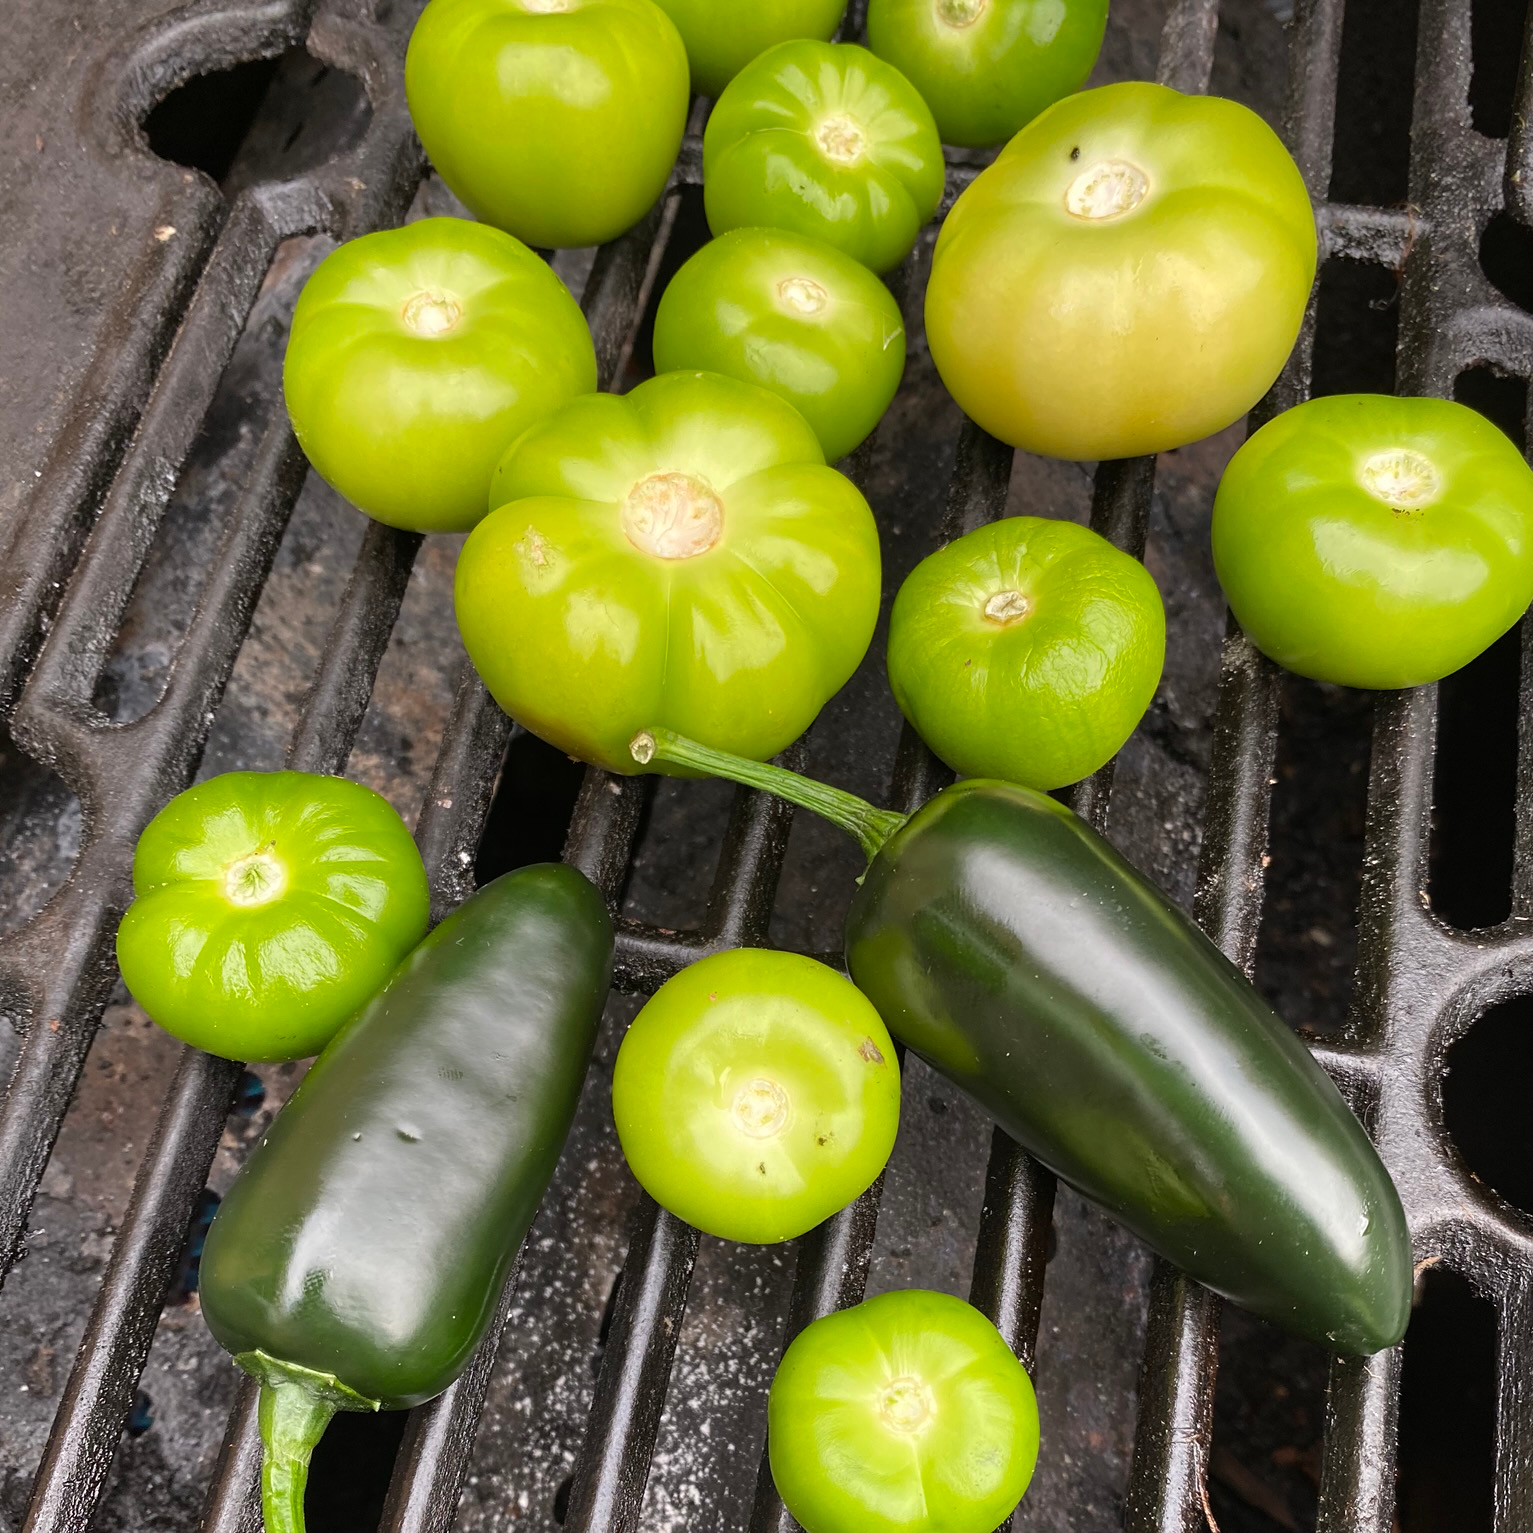 blistering tomatillo and jalapeno fruits